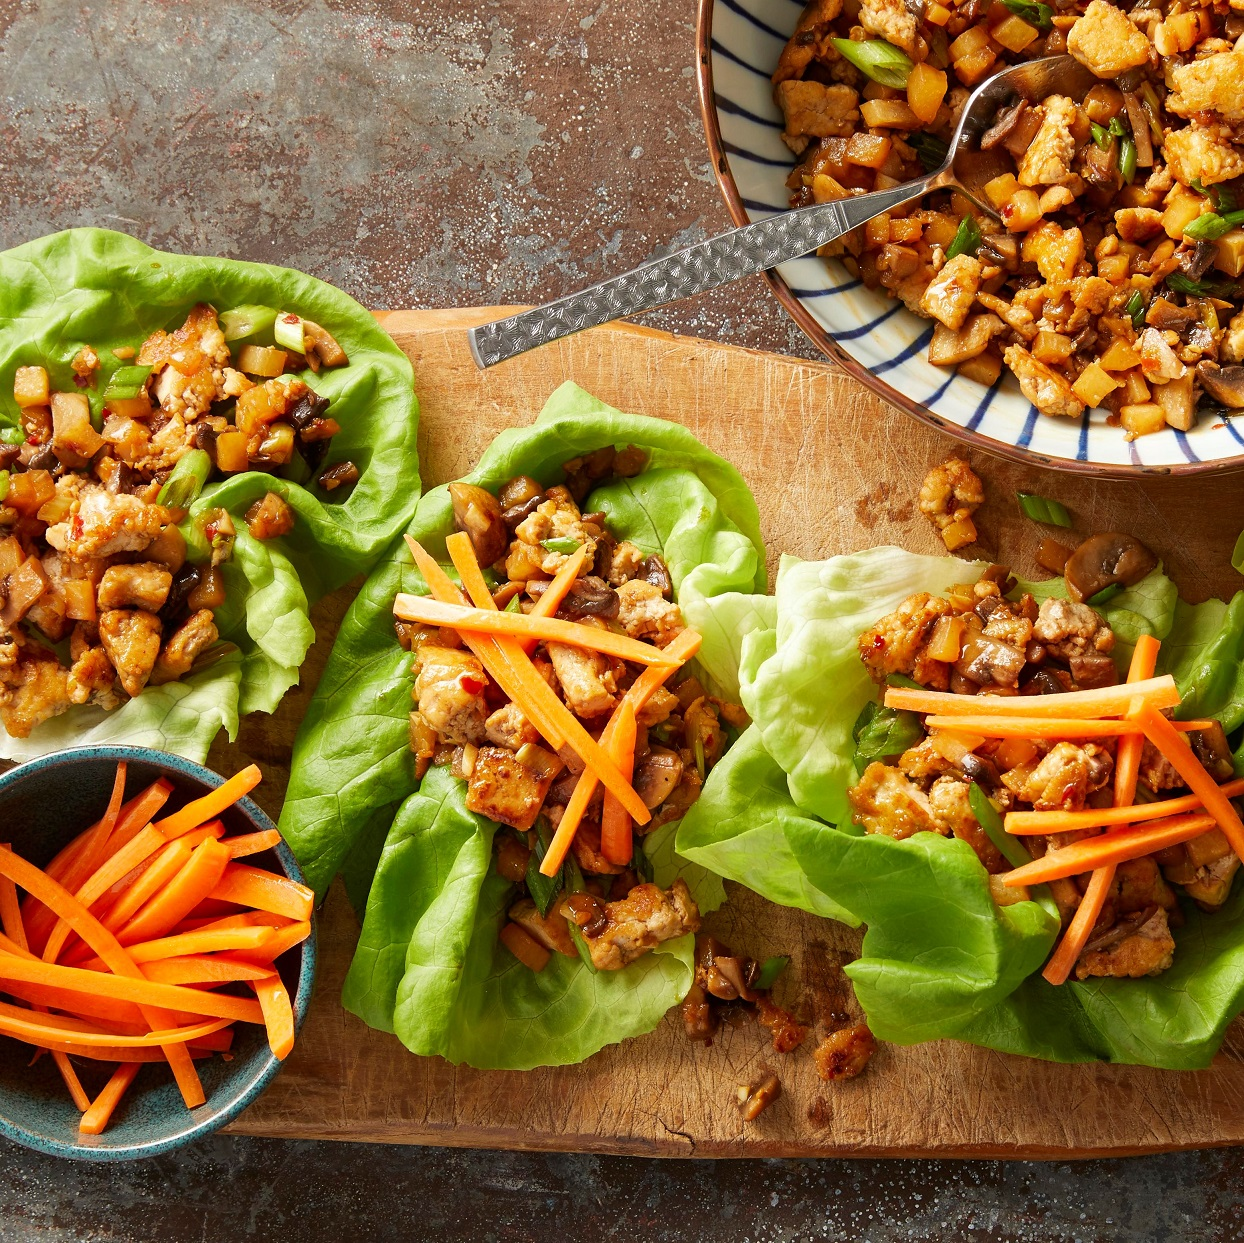 Stuff crisp lettuce leaves with a savory filling inspired by PF Chang's famous lettuce wraps. These low-carb wraps made with tofu, mushrooms and daikon radish are an easy vegetarian dinner that beats takeout! Garnish the wraps with julienned carrots for added crunch. Source: EatingWell.com, January 2020